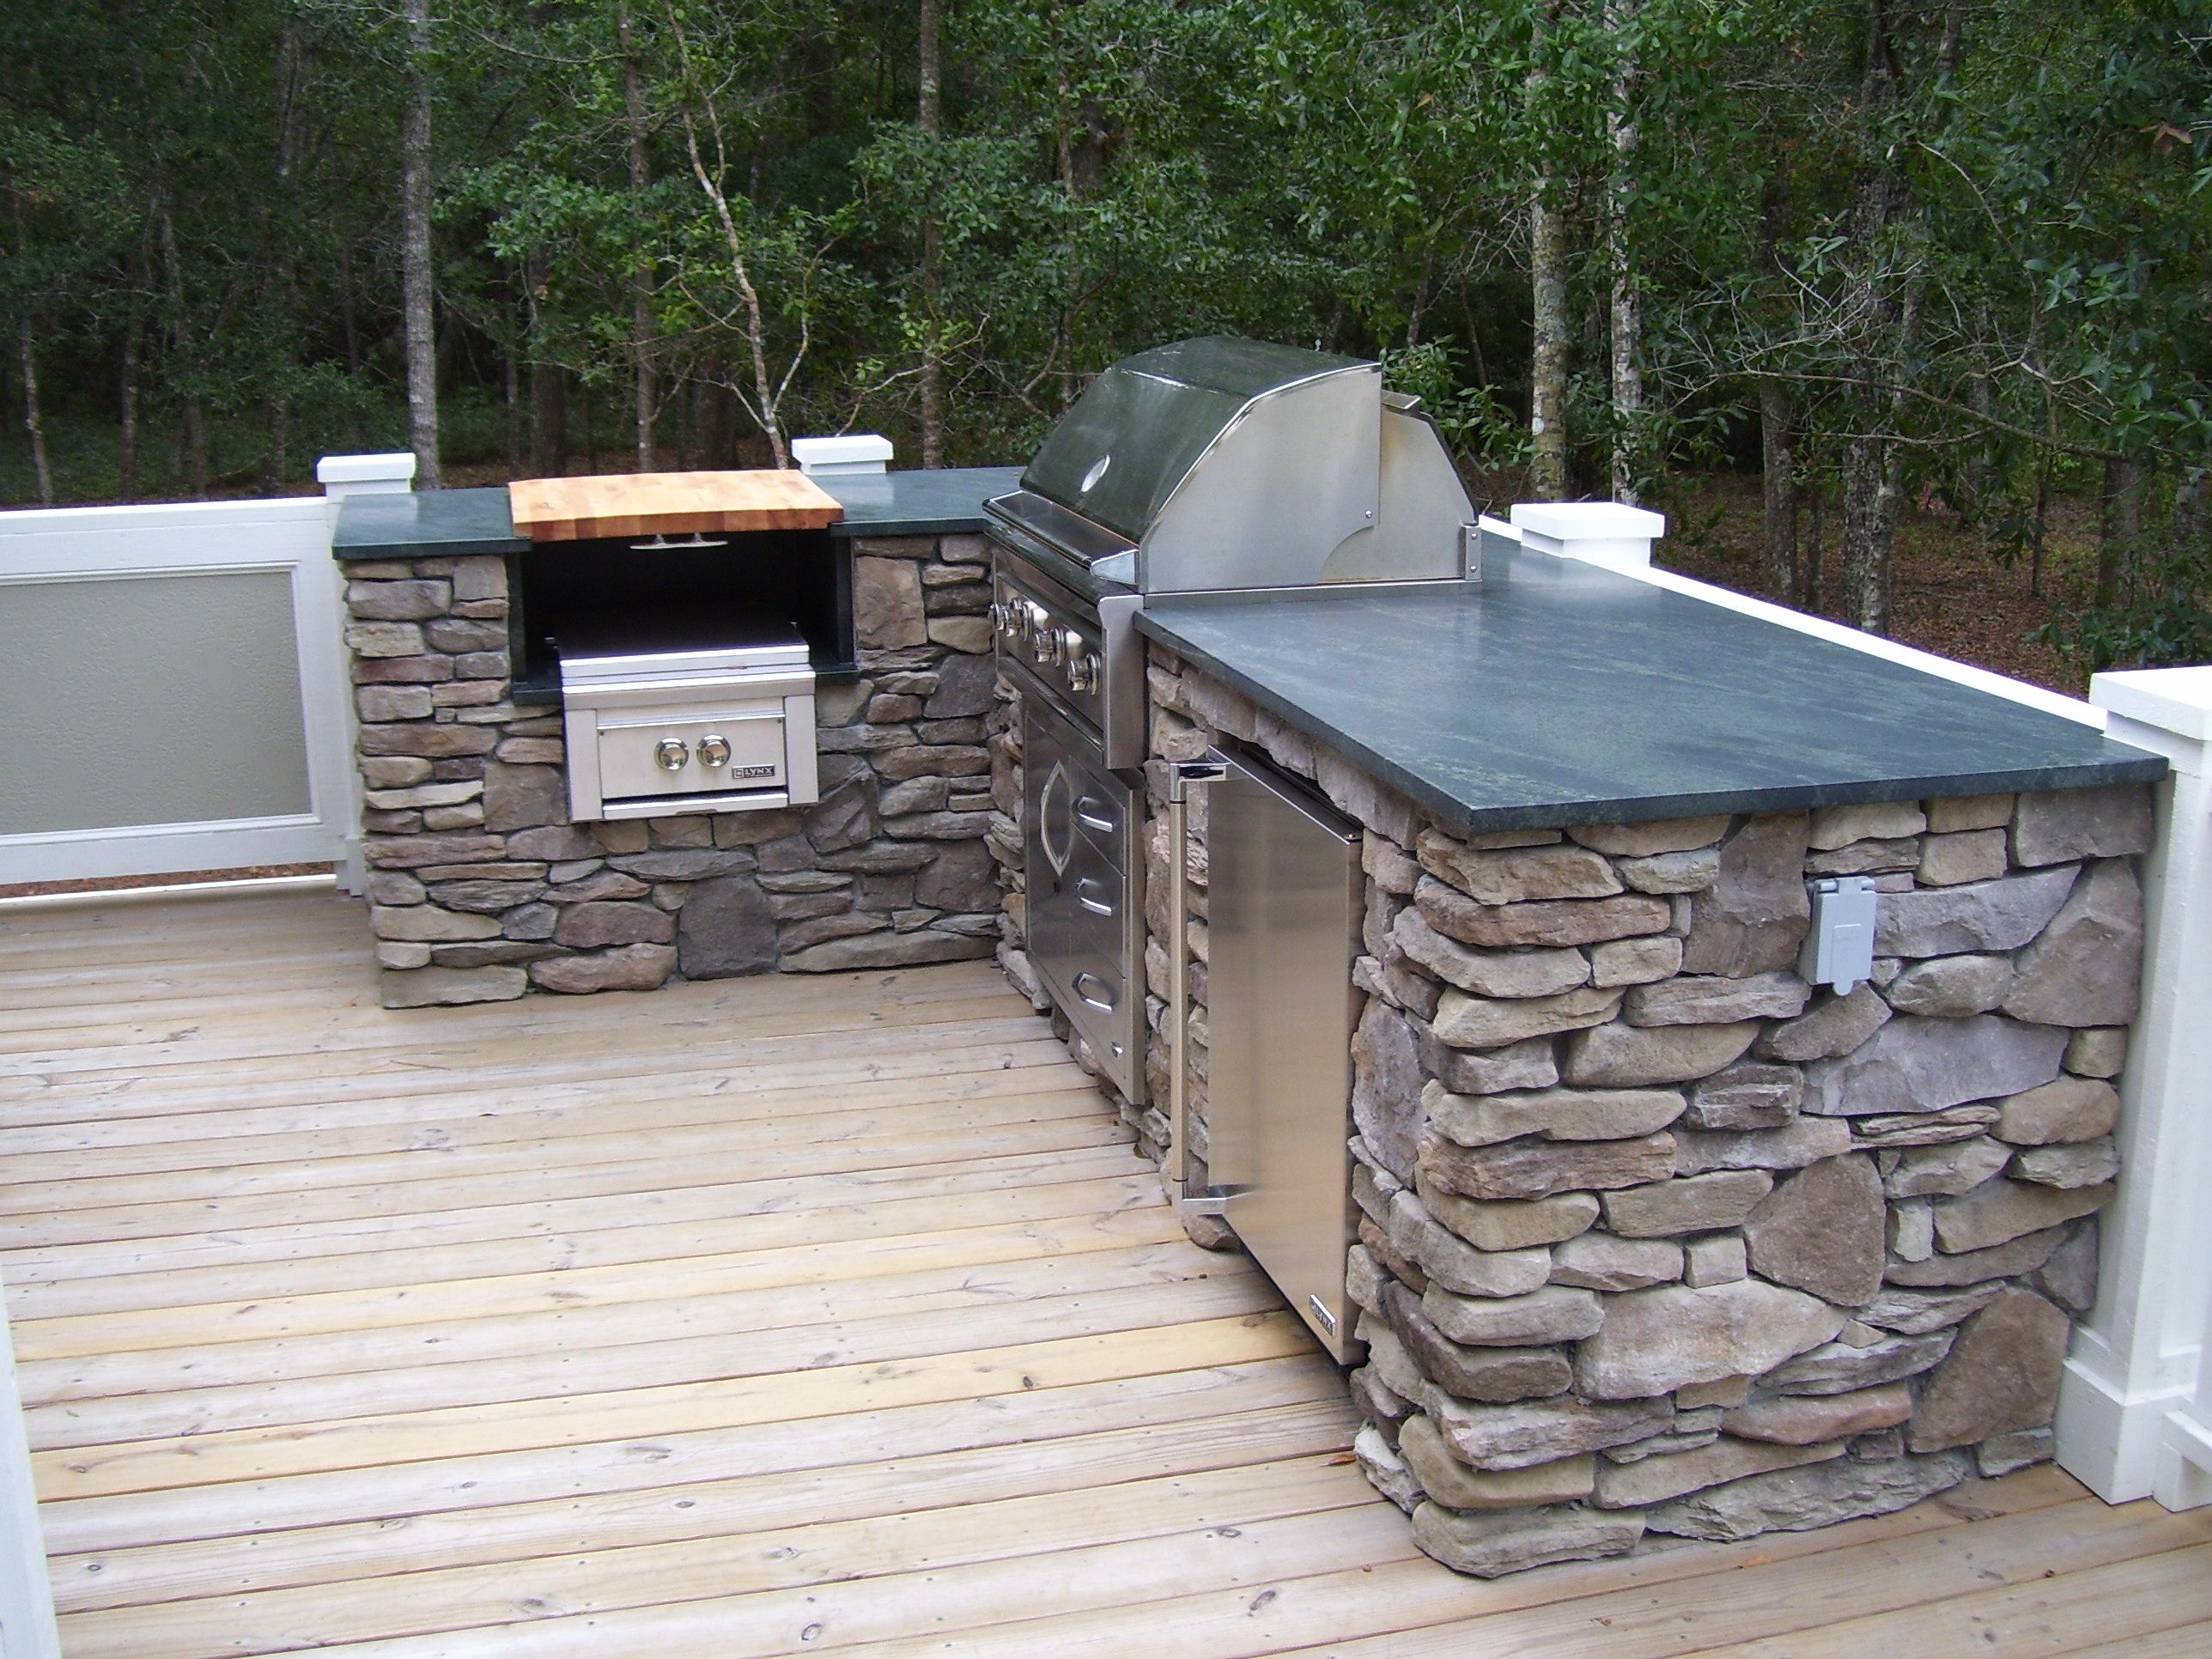 outdoor kitchen supplies wooden cabinets the soapstone countertop matches